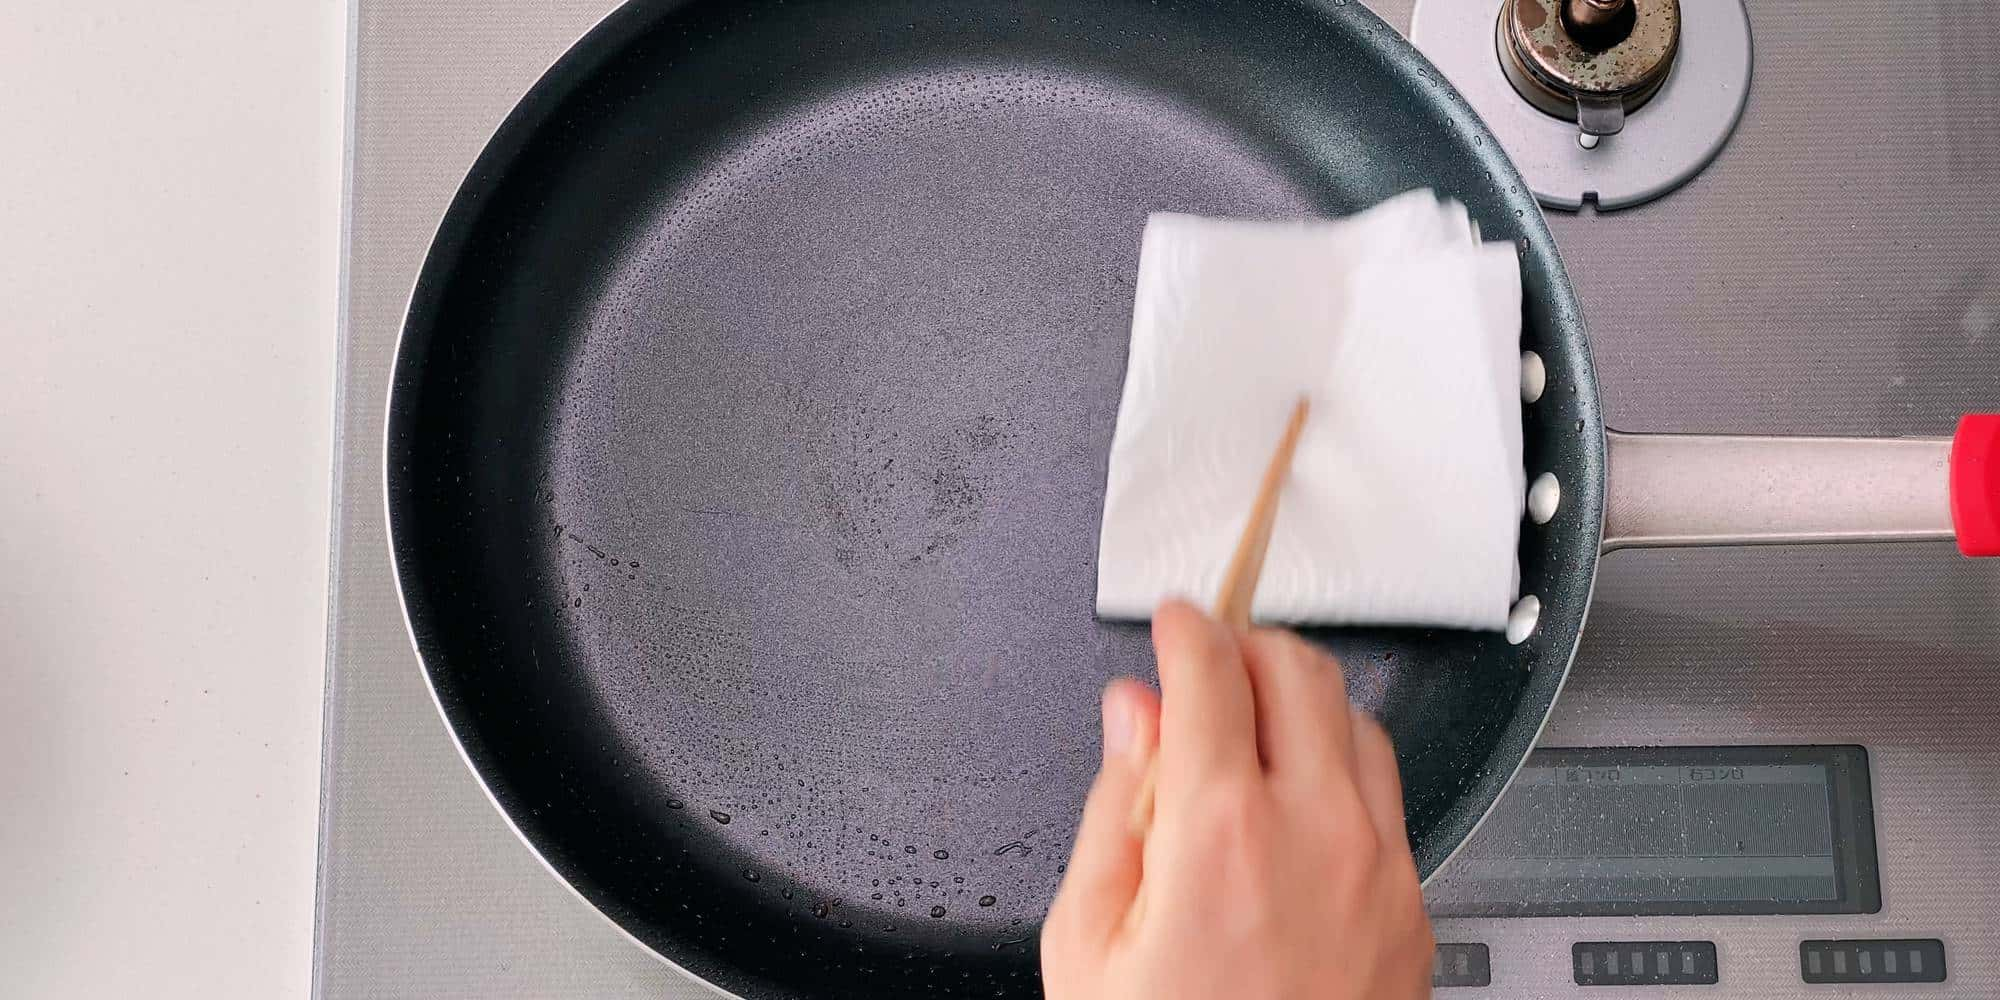 Wiping out the oil from the pan before glazing the pork.